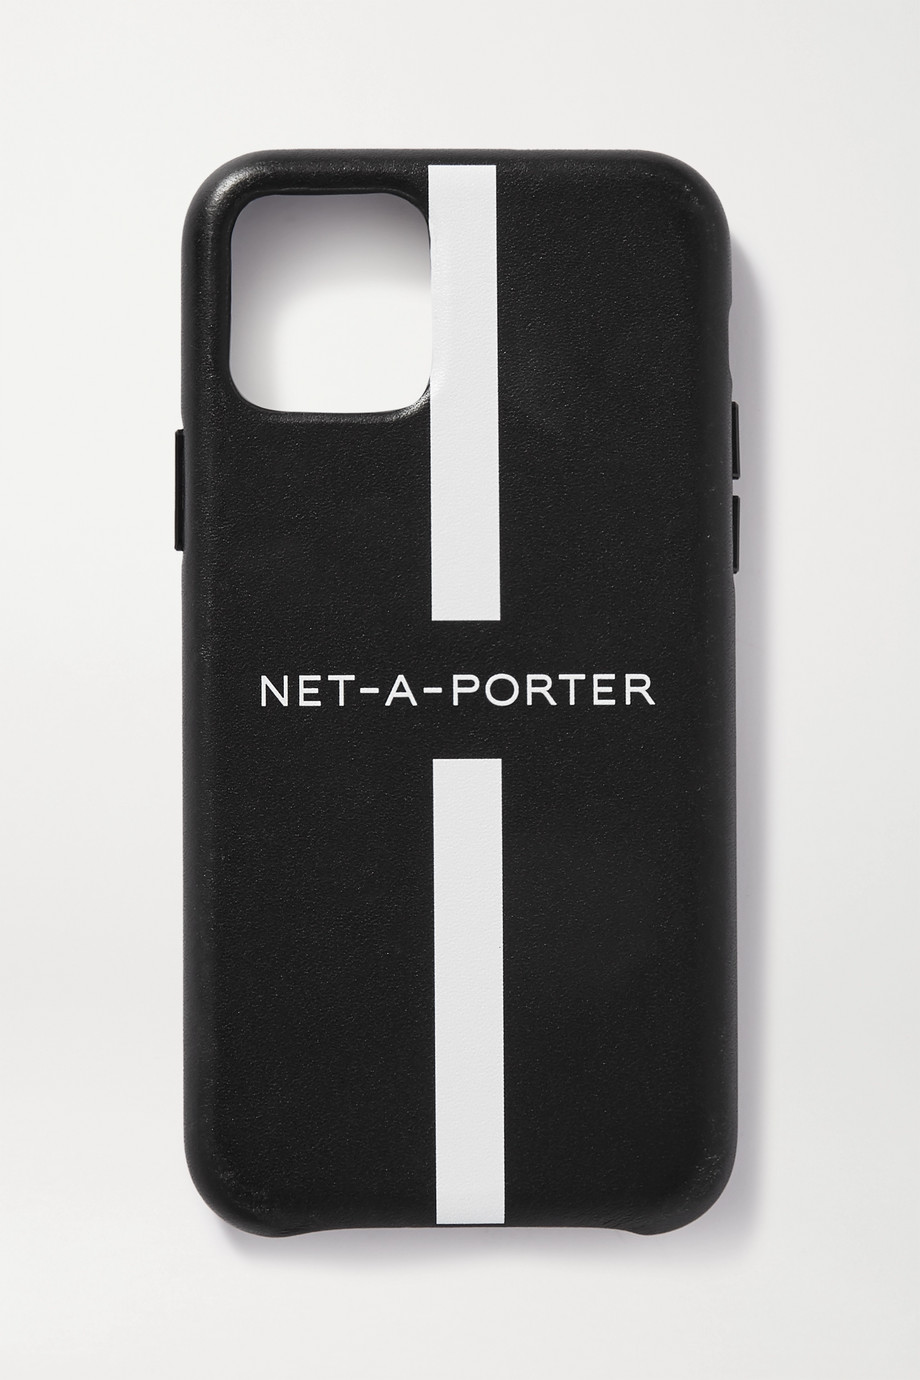 NET-A-PORTER Printed leather iPhone 11 case